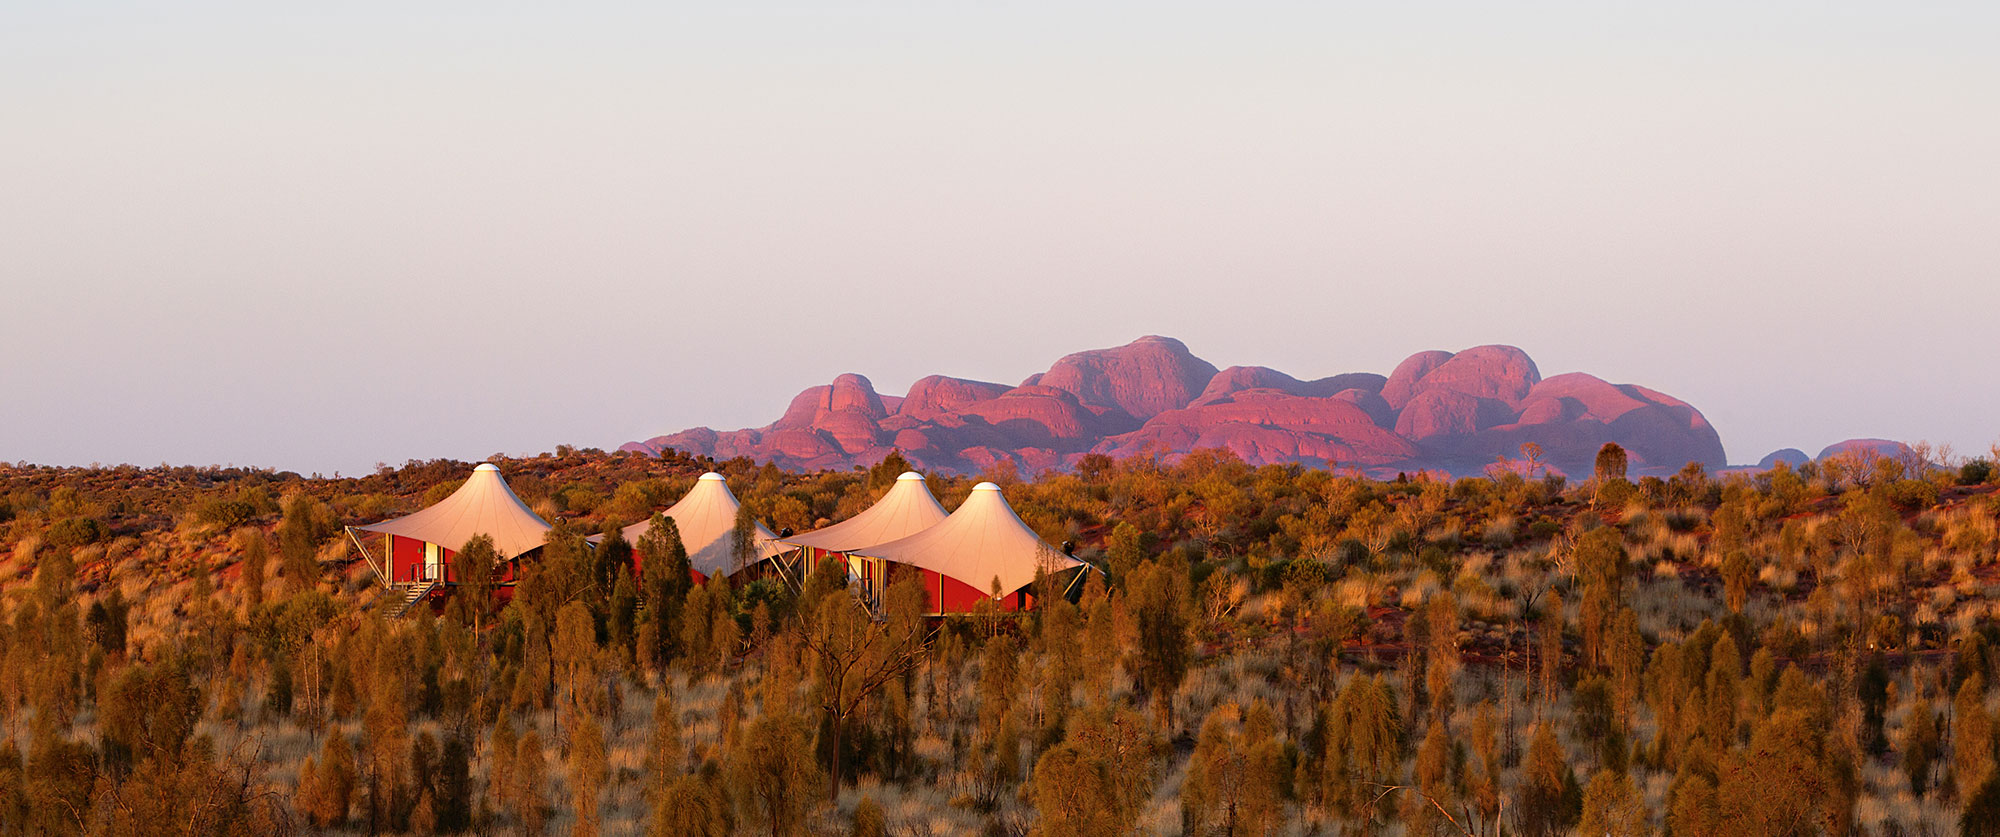 Spoil the Senses: Essential Australian Luxury - Longitude 131 Luxury Outback Hotel